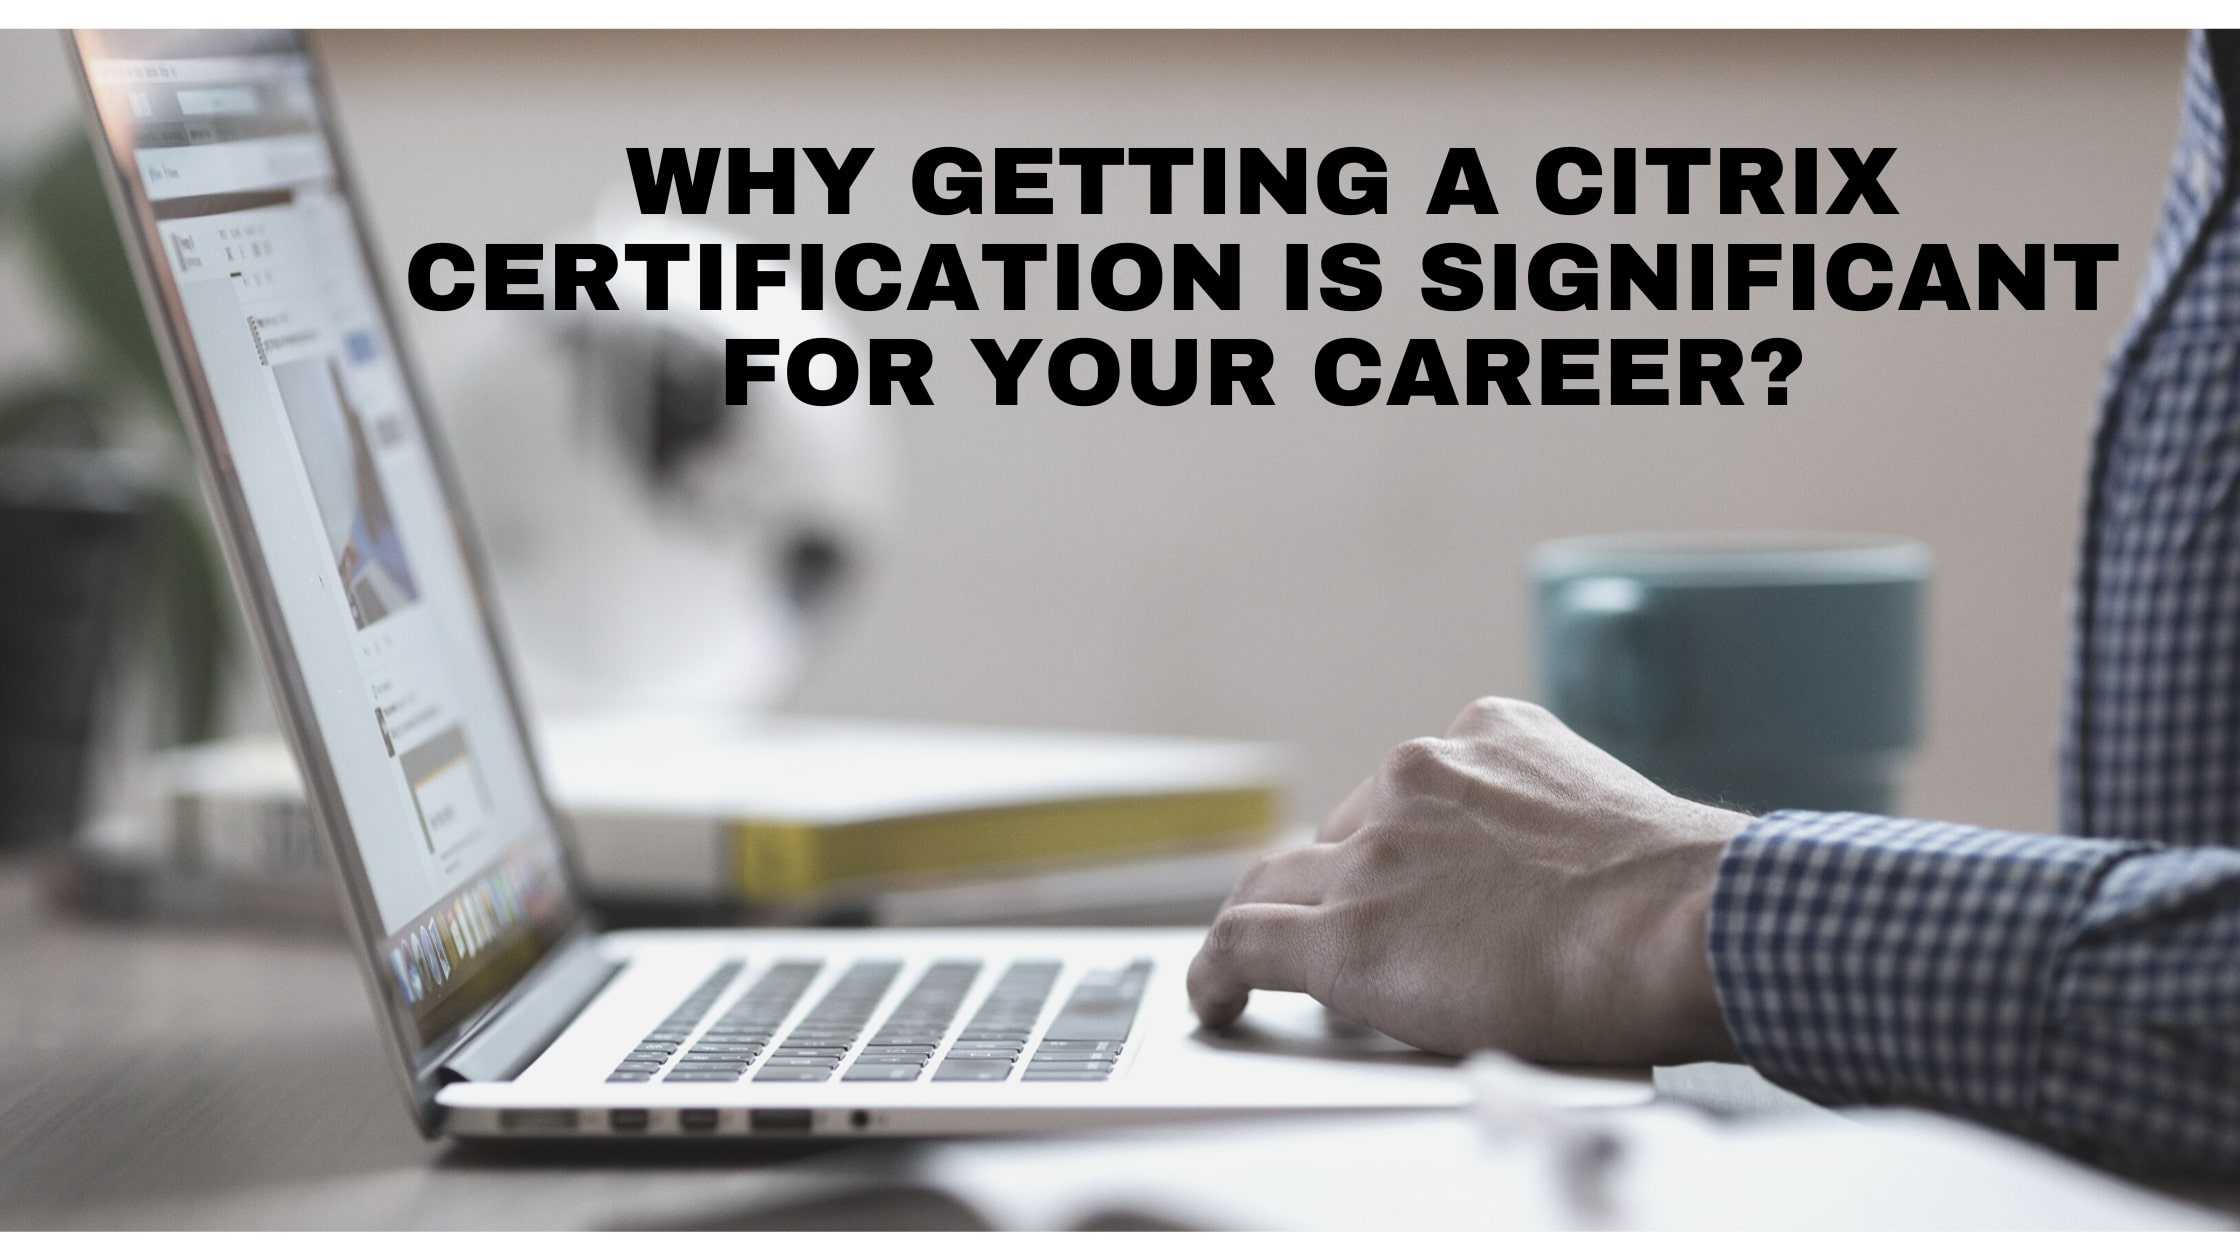 img-why-getting-a-citrix-certification-is-significant-for-your-career.jpg